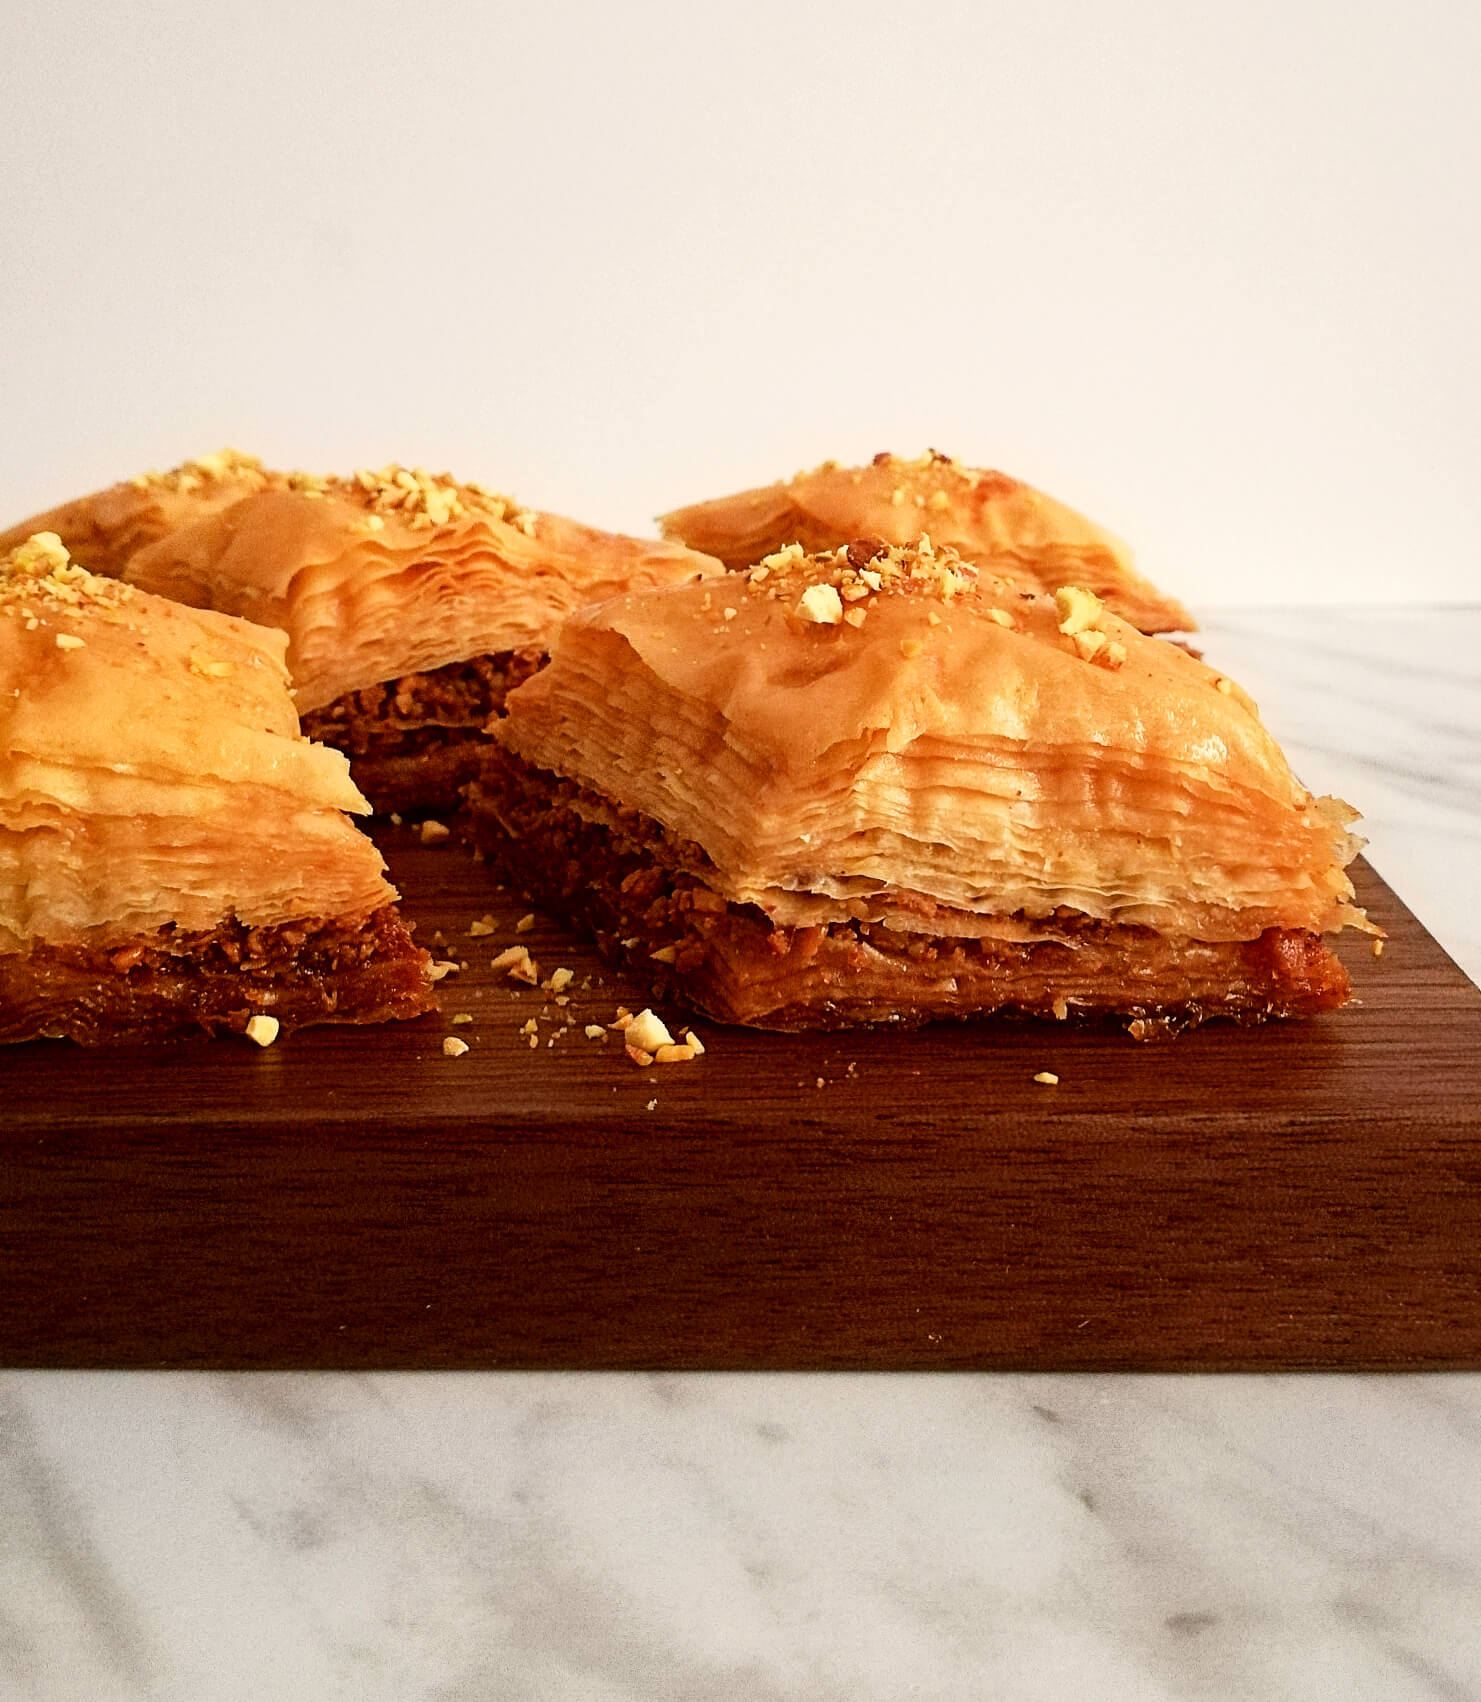 baklava on serving board side view close up